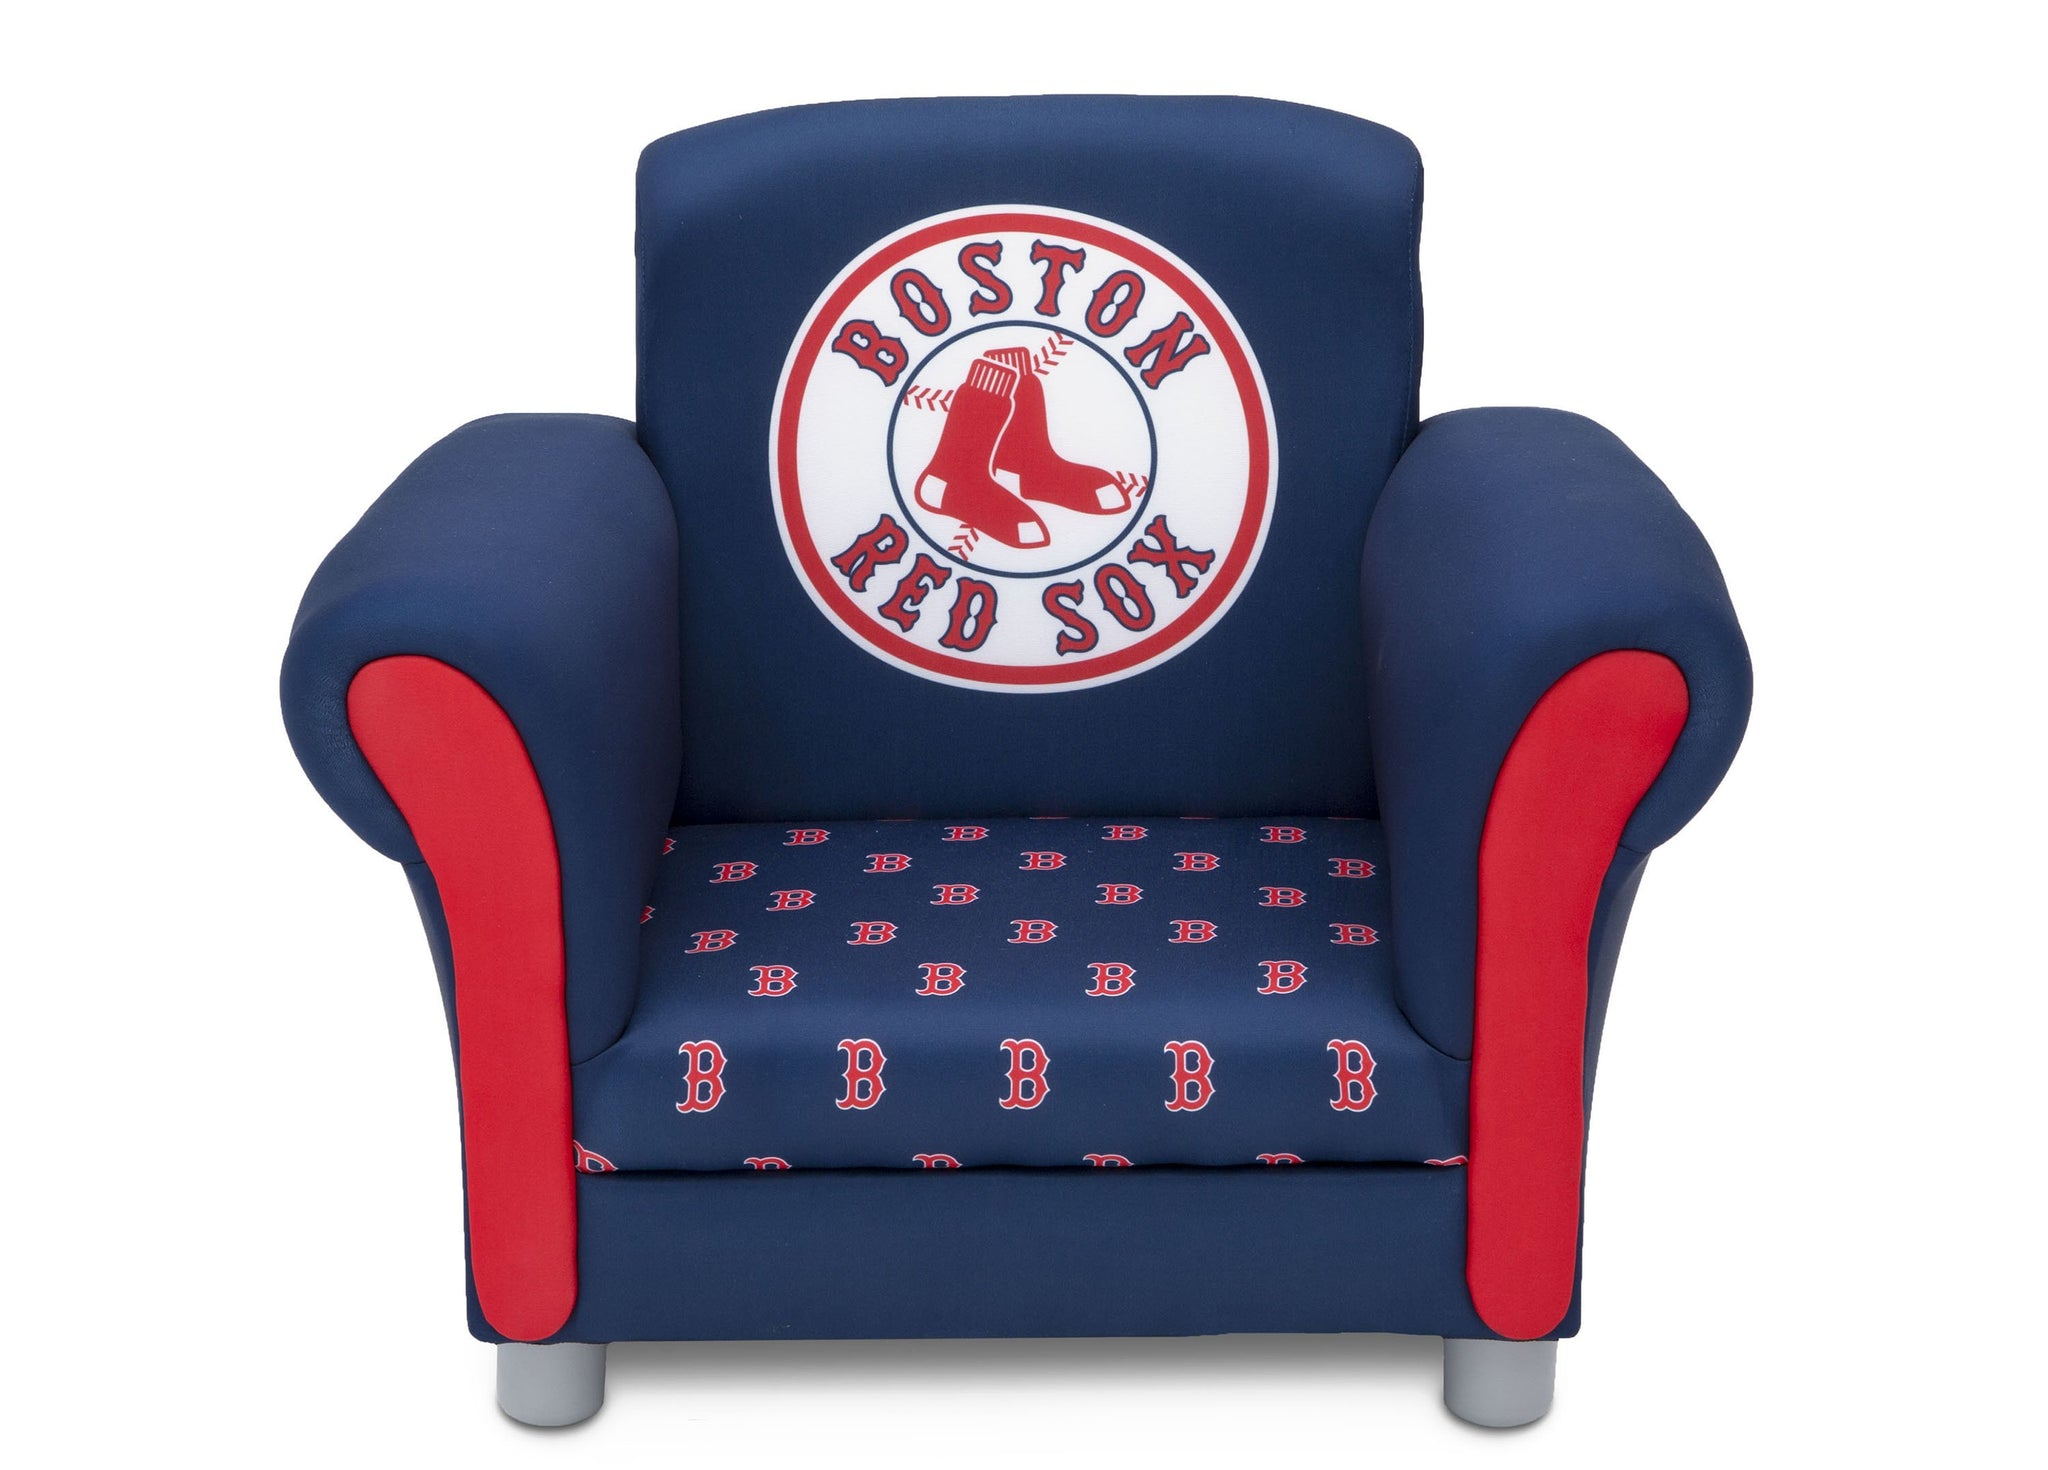 Boston Red Sox (1233)